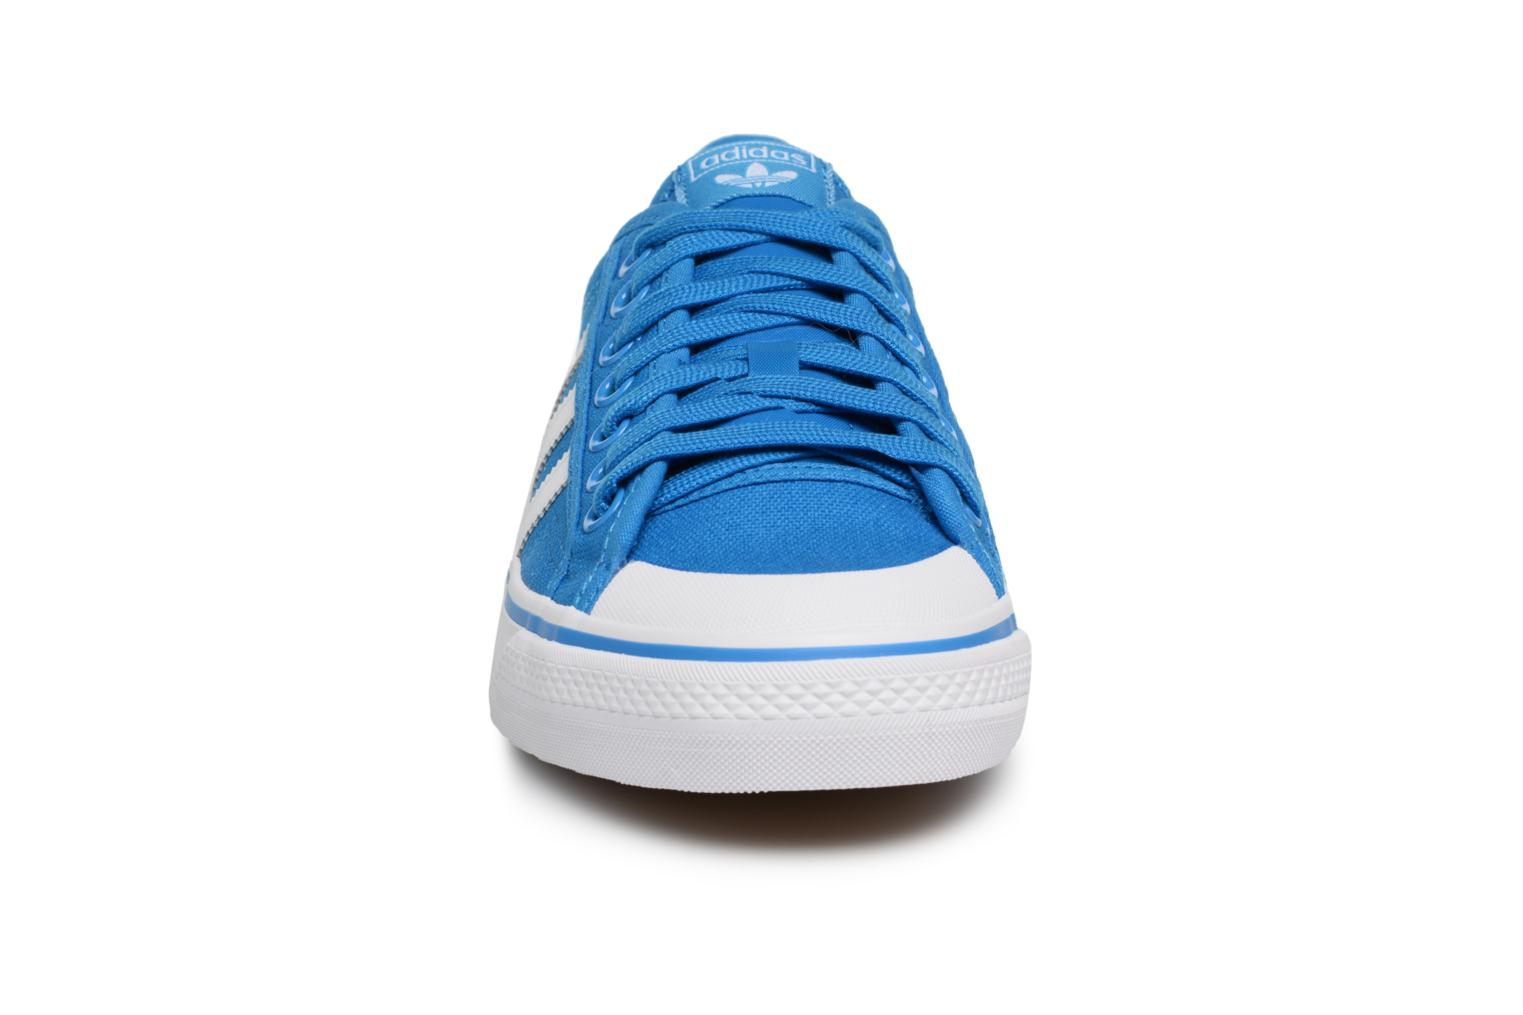 Adidas Originals Nizza Blu 5fzviT